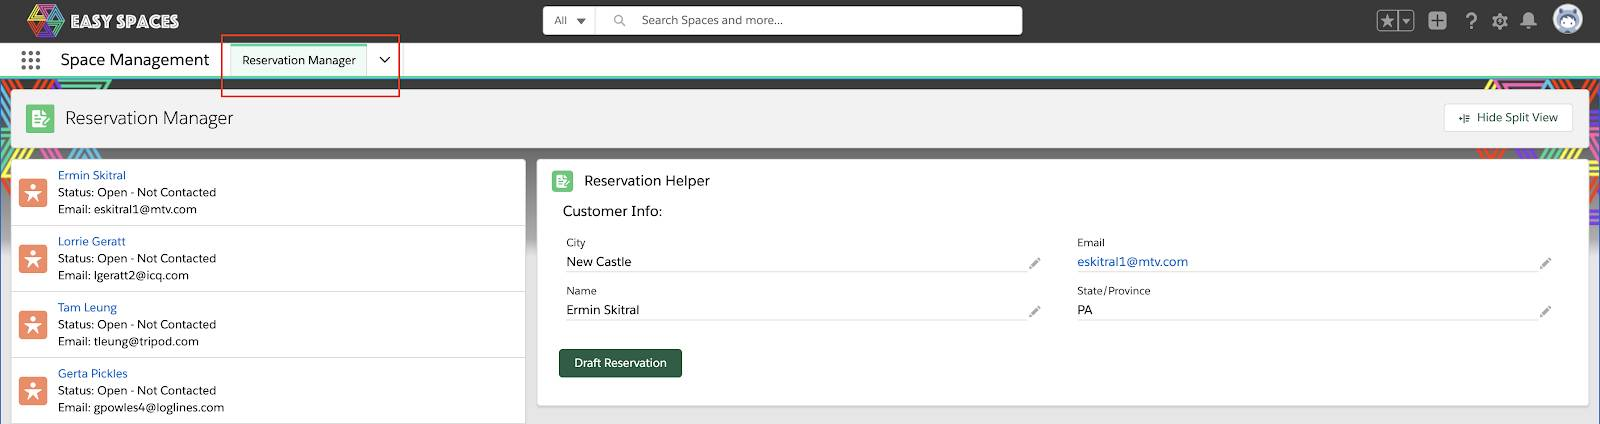 Reservation Manager navigation item is selected from the navigation menu of the Salesforce Console App